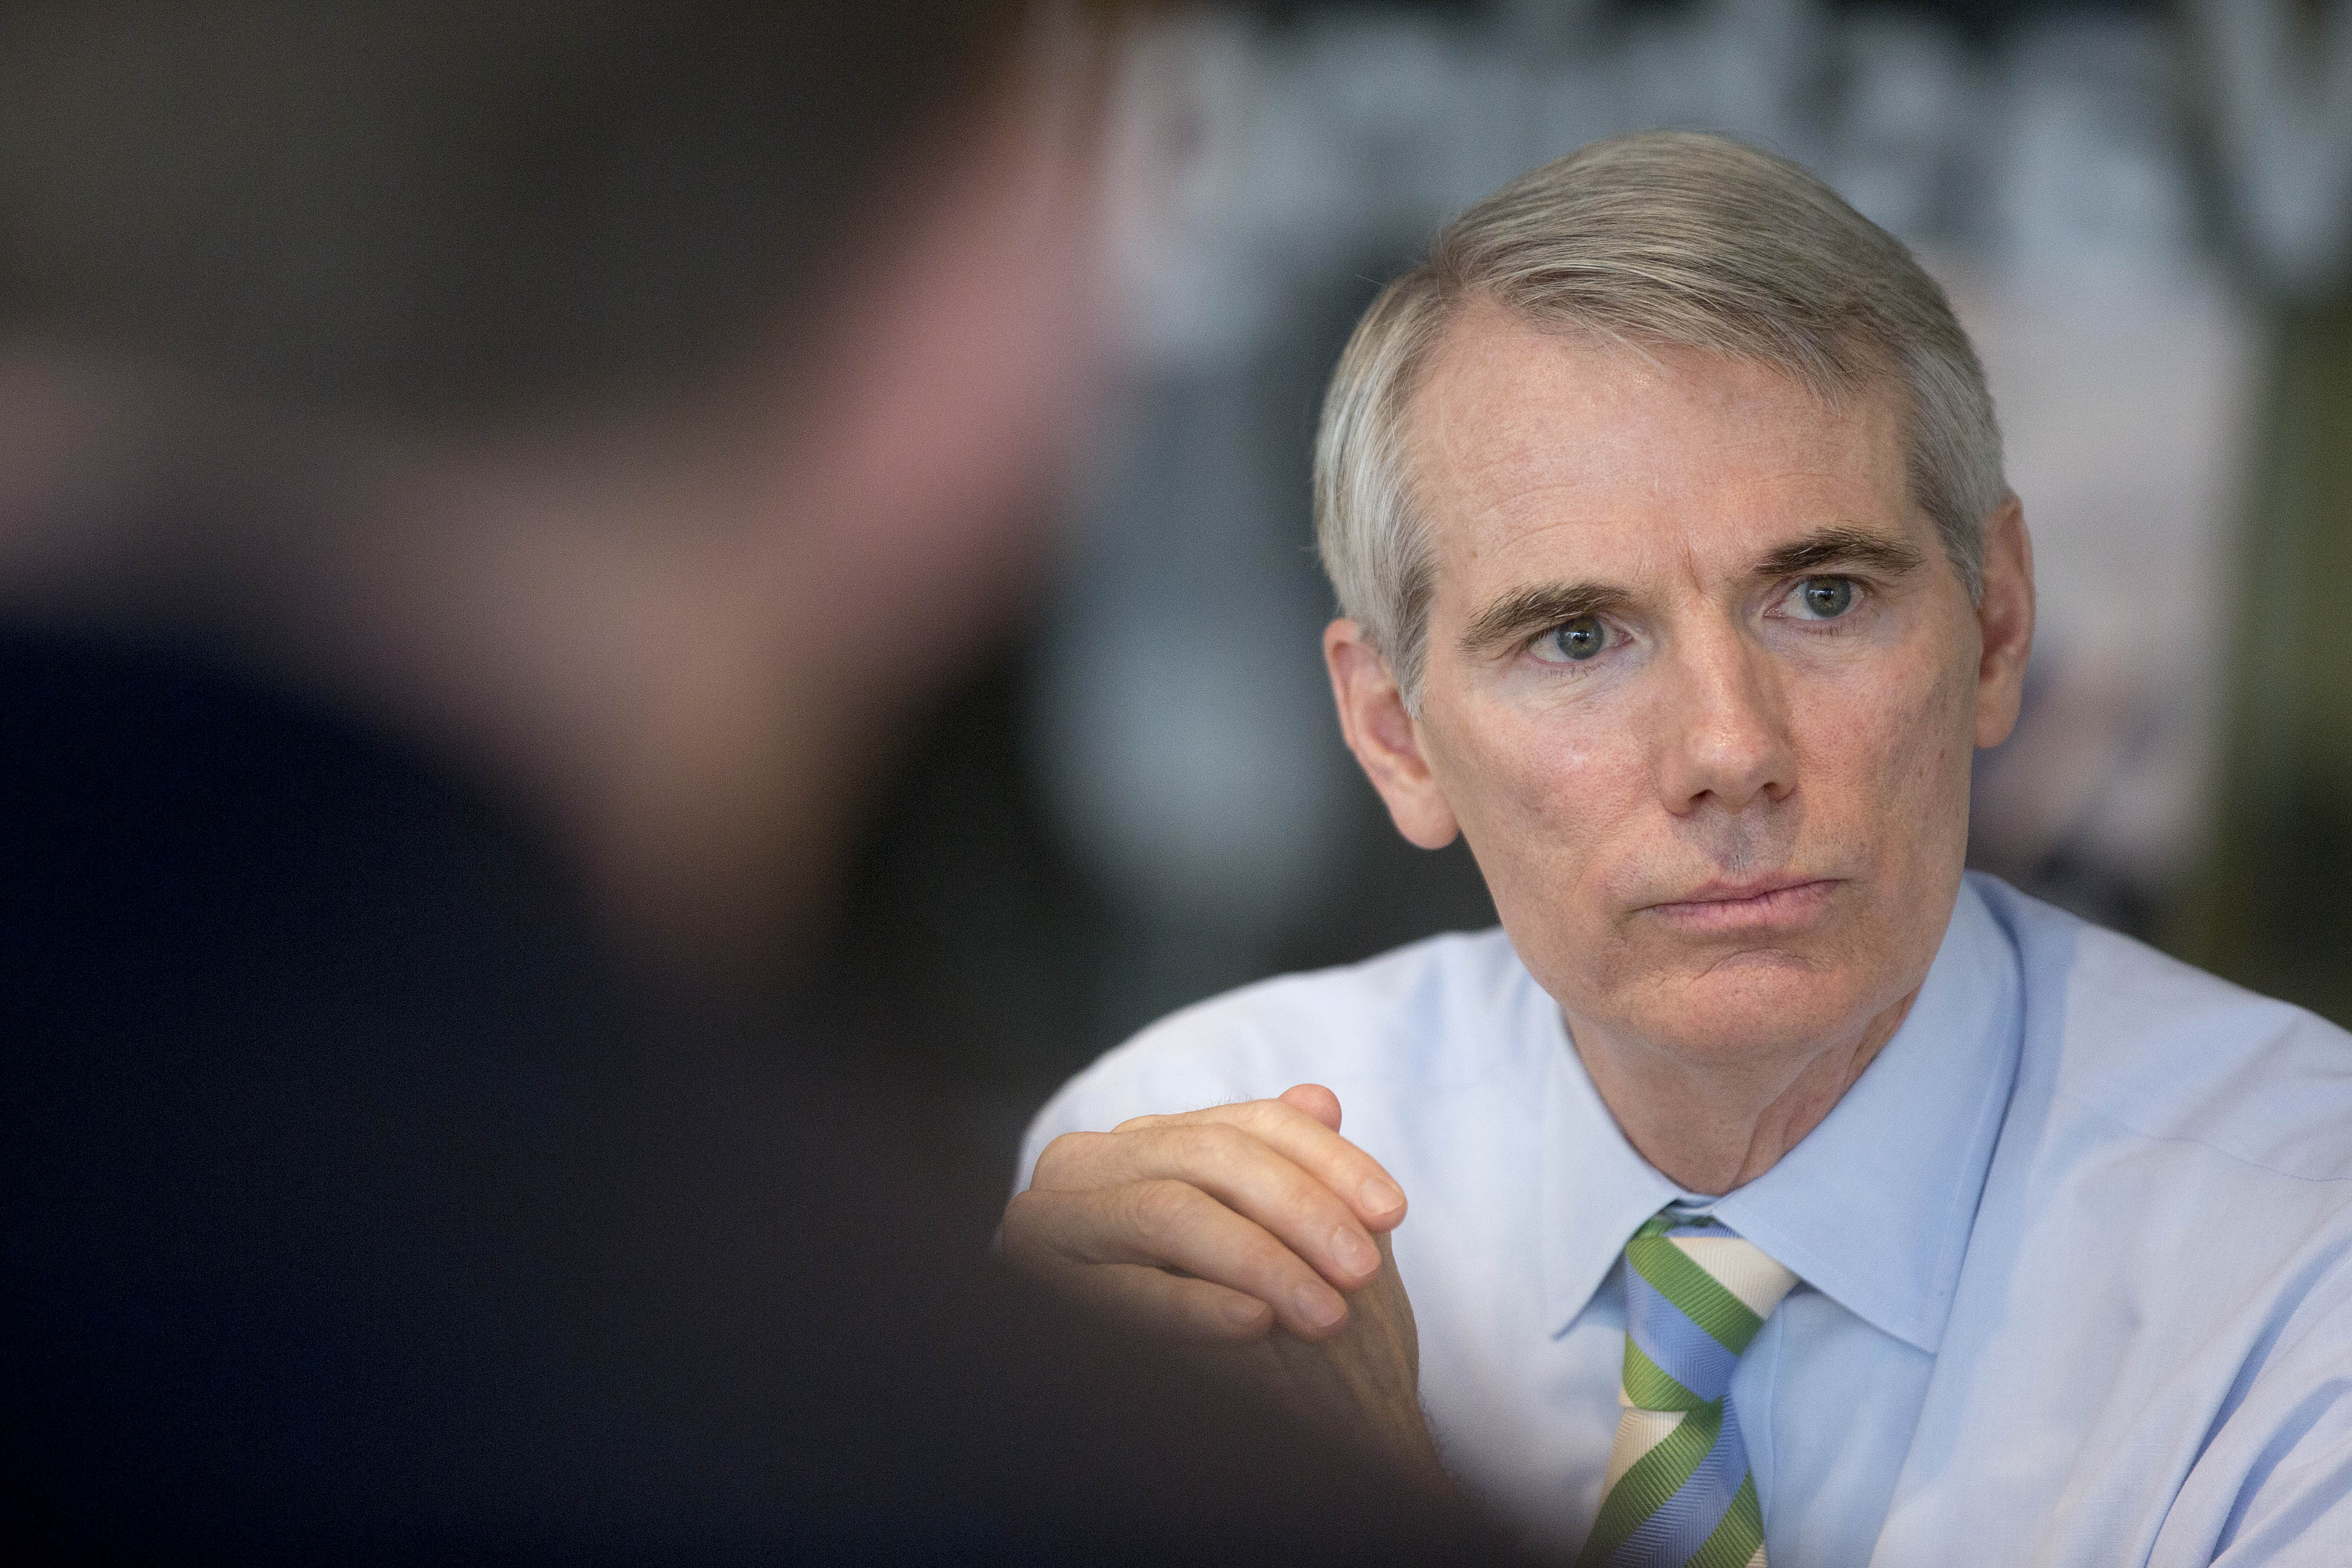 Senator Rob Portman, a Republican from Ohio, speaks during an interview in Washington on July 10, 2014.